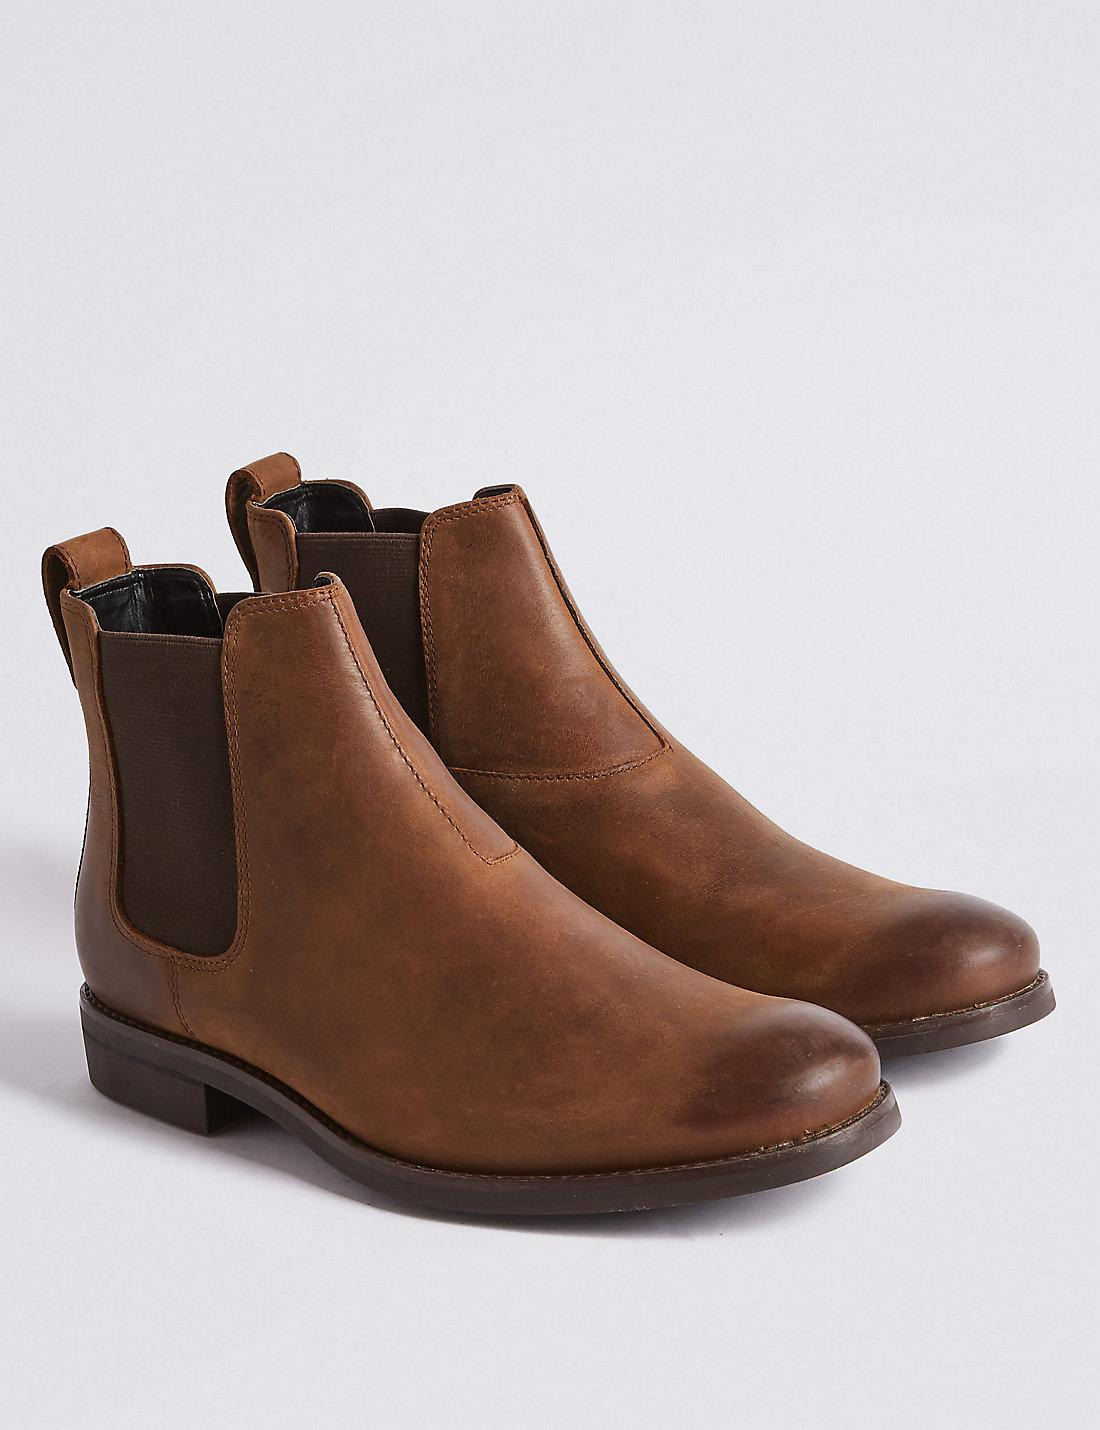 sale usa online check out buying now Marks & Spencer Leather Chelsea Boots in Brown for Men - Lyst